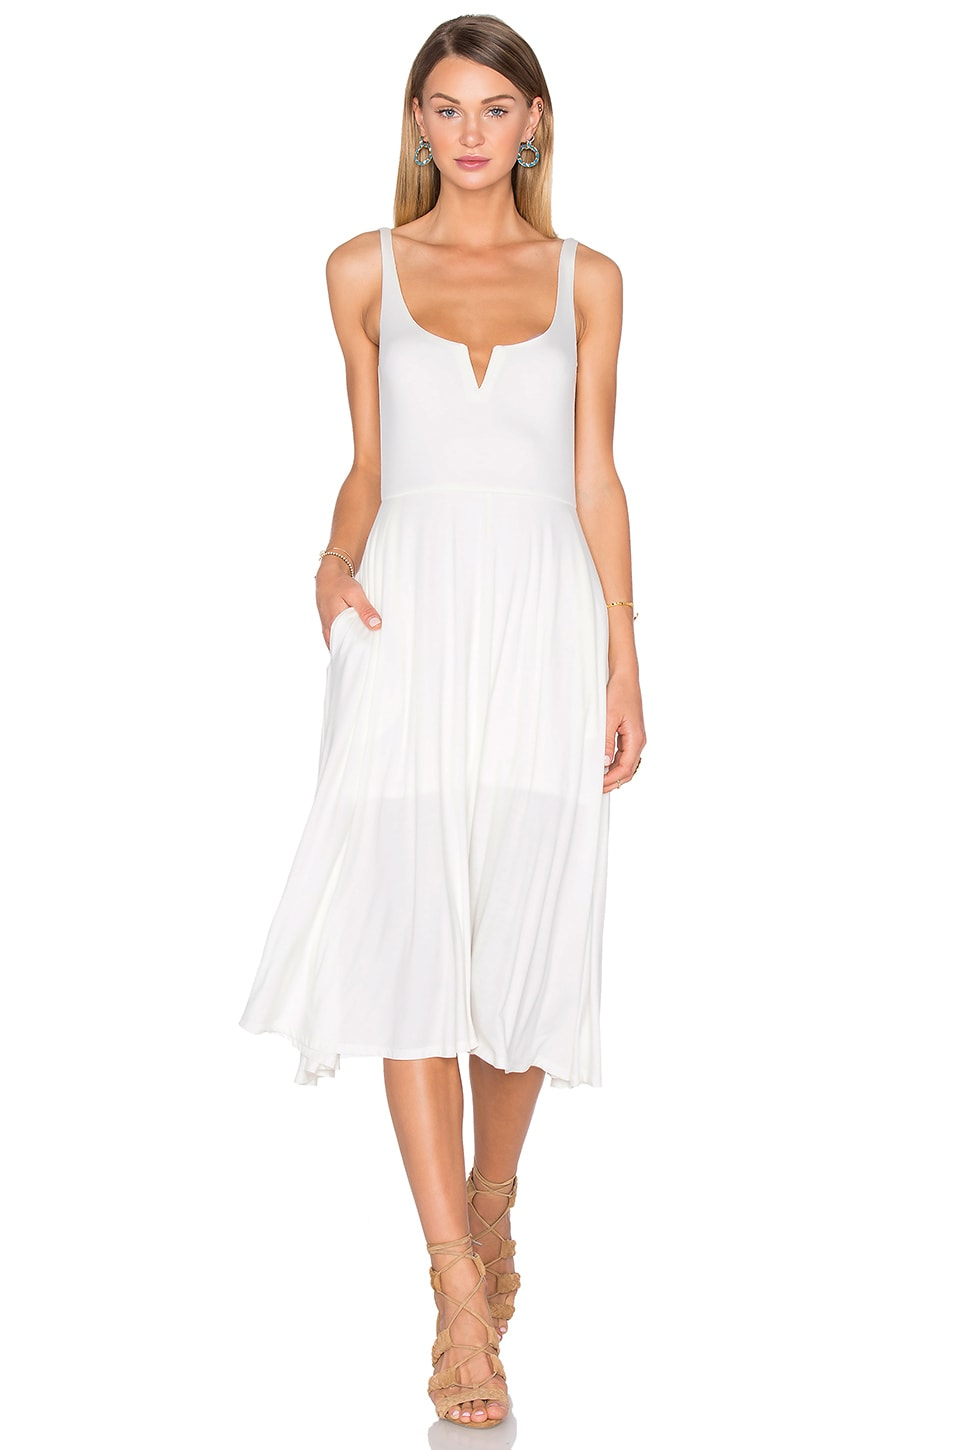 House of Harlow 1960 x REVOLVE Ella Tank Dress in Ivory